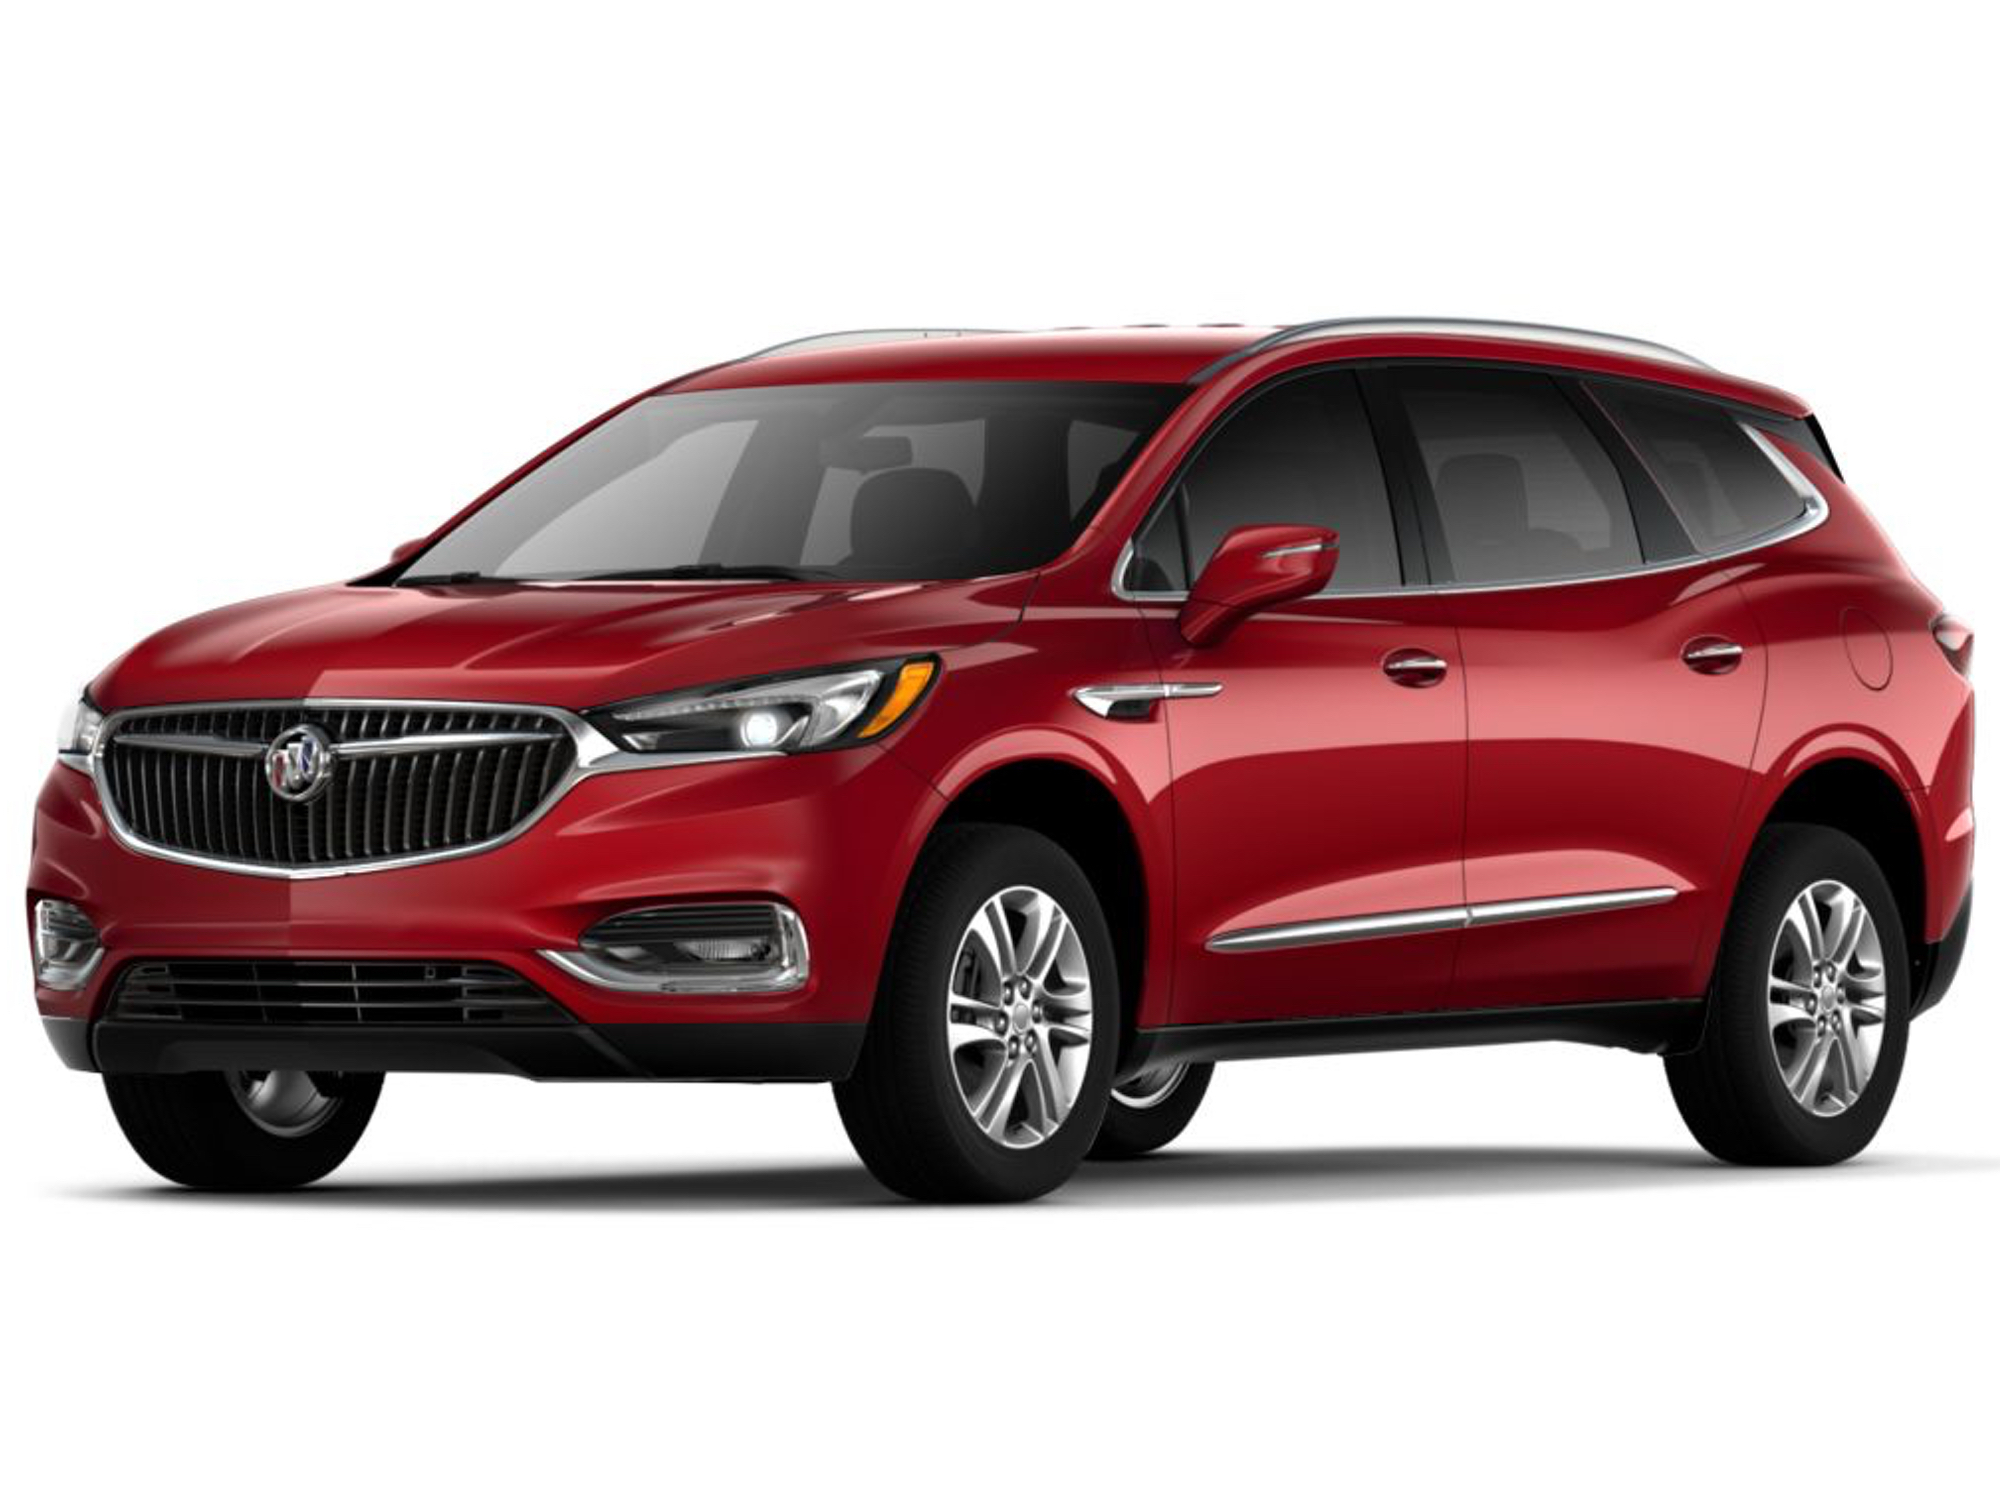 2019 Buick Enclave Exterior Colors | Gm Authority New 2022 Buick Enclave Price, Pictures, Brochure